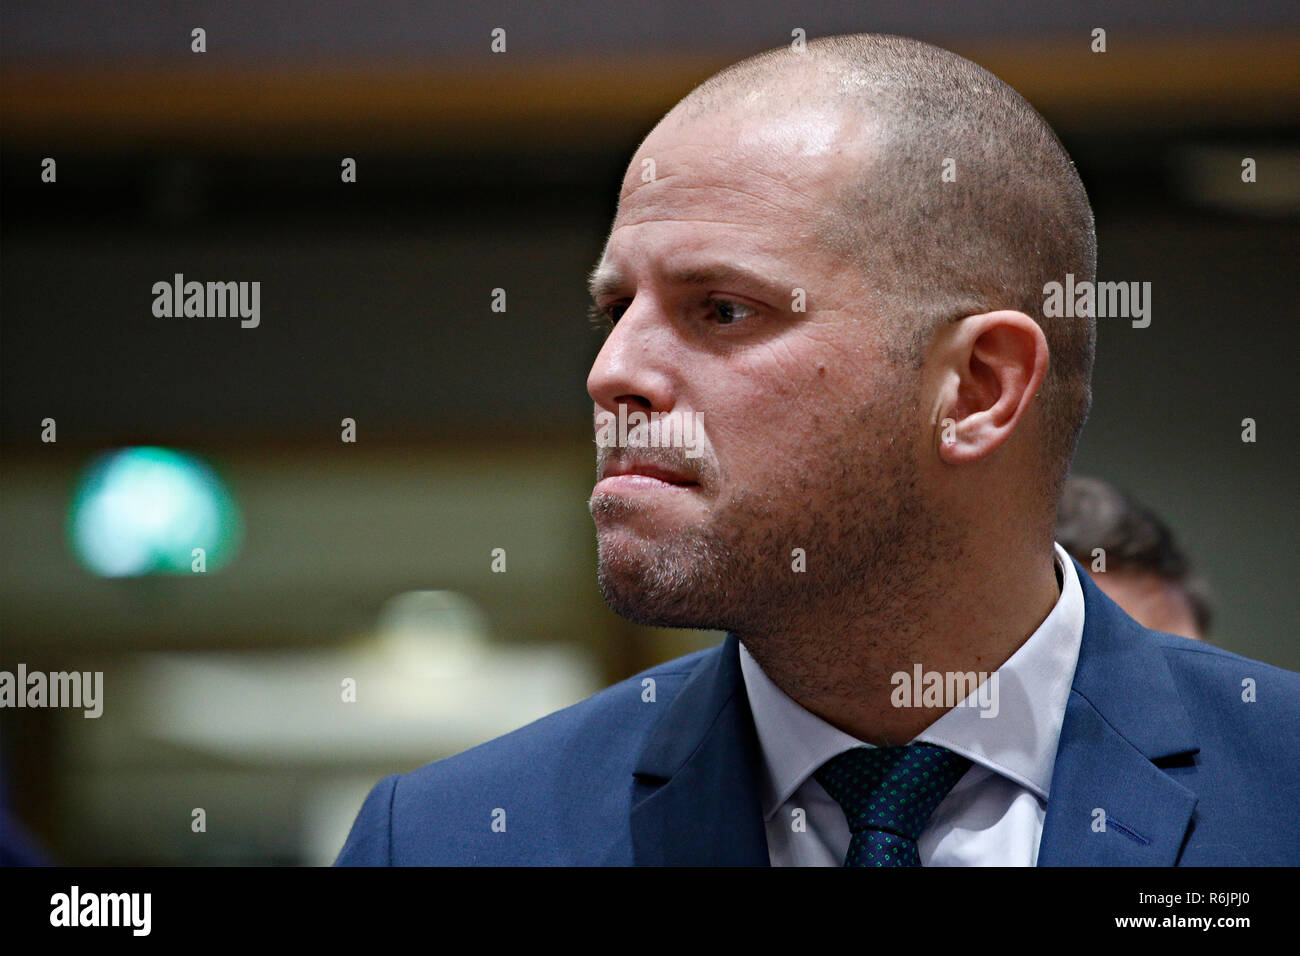 Brussels Belgium 6th Dec 2018 Theo Francken State Secretary For Asylum Policy And Migration Of Belgium